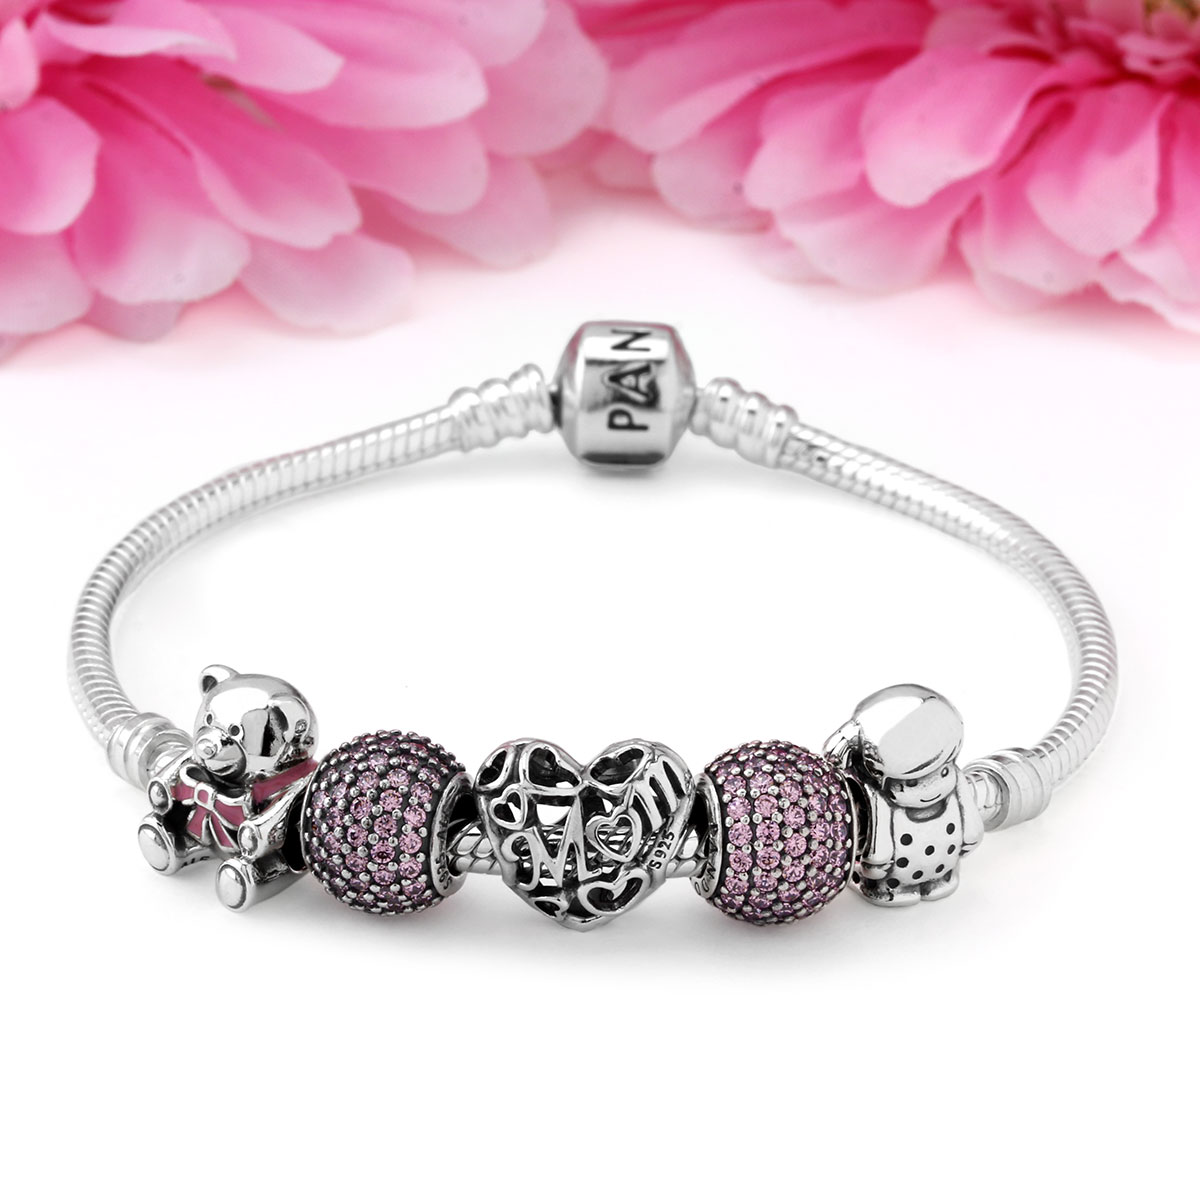 Pandora A Mother's Love From Daughter Charm Bracelet1264   Pancharmbracelets